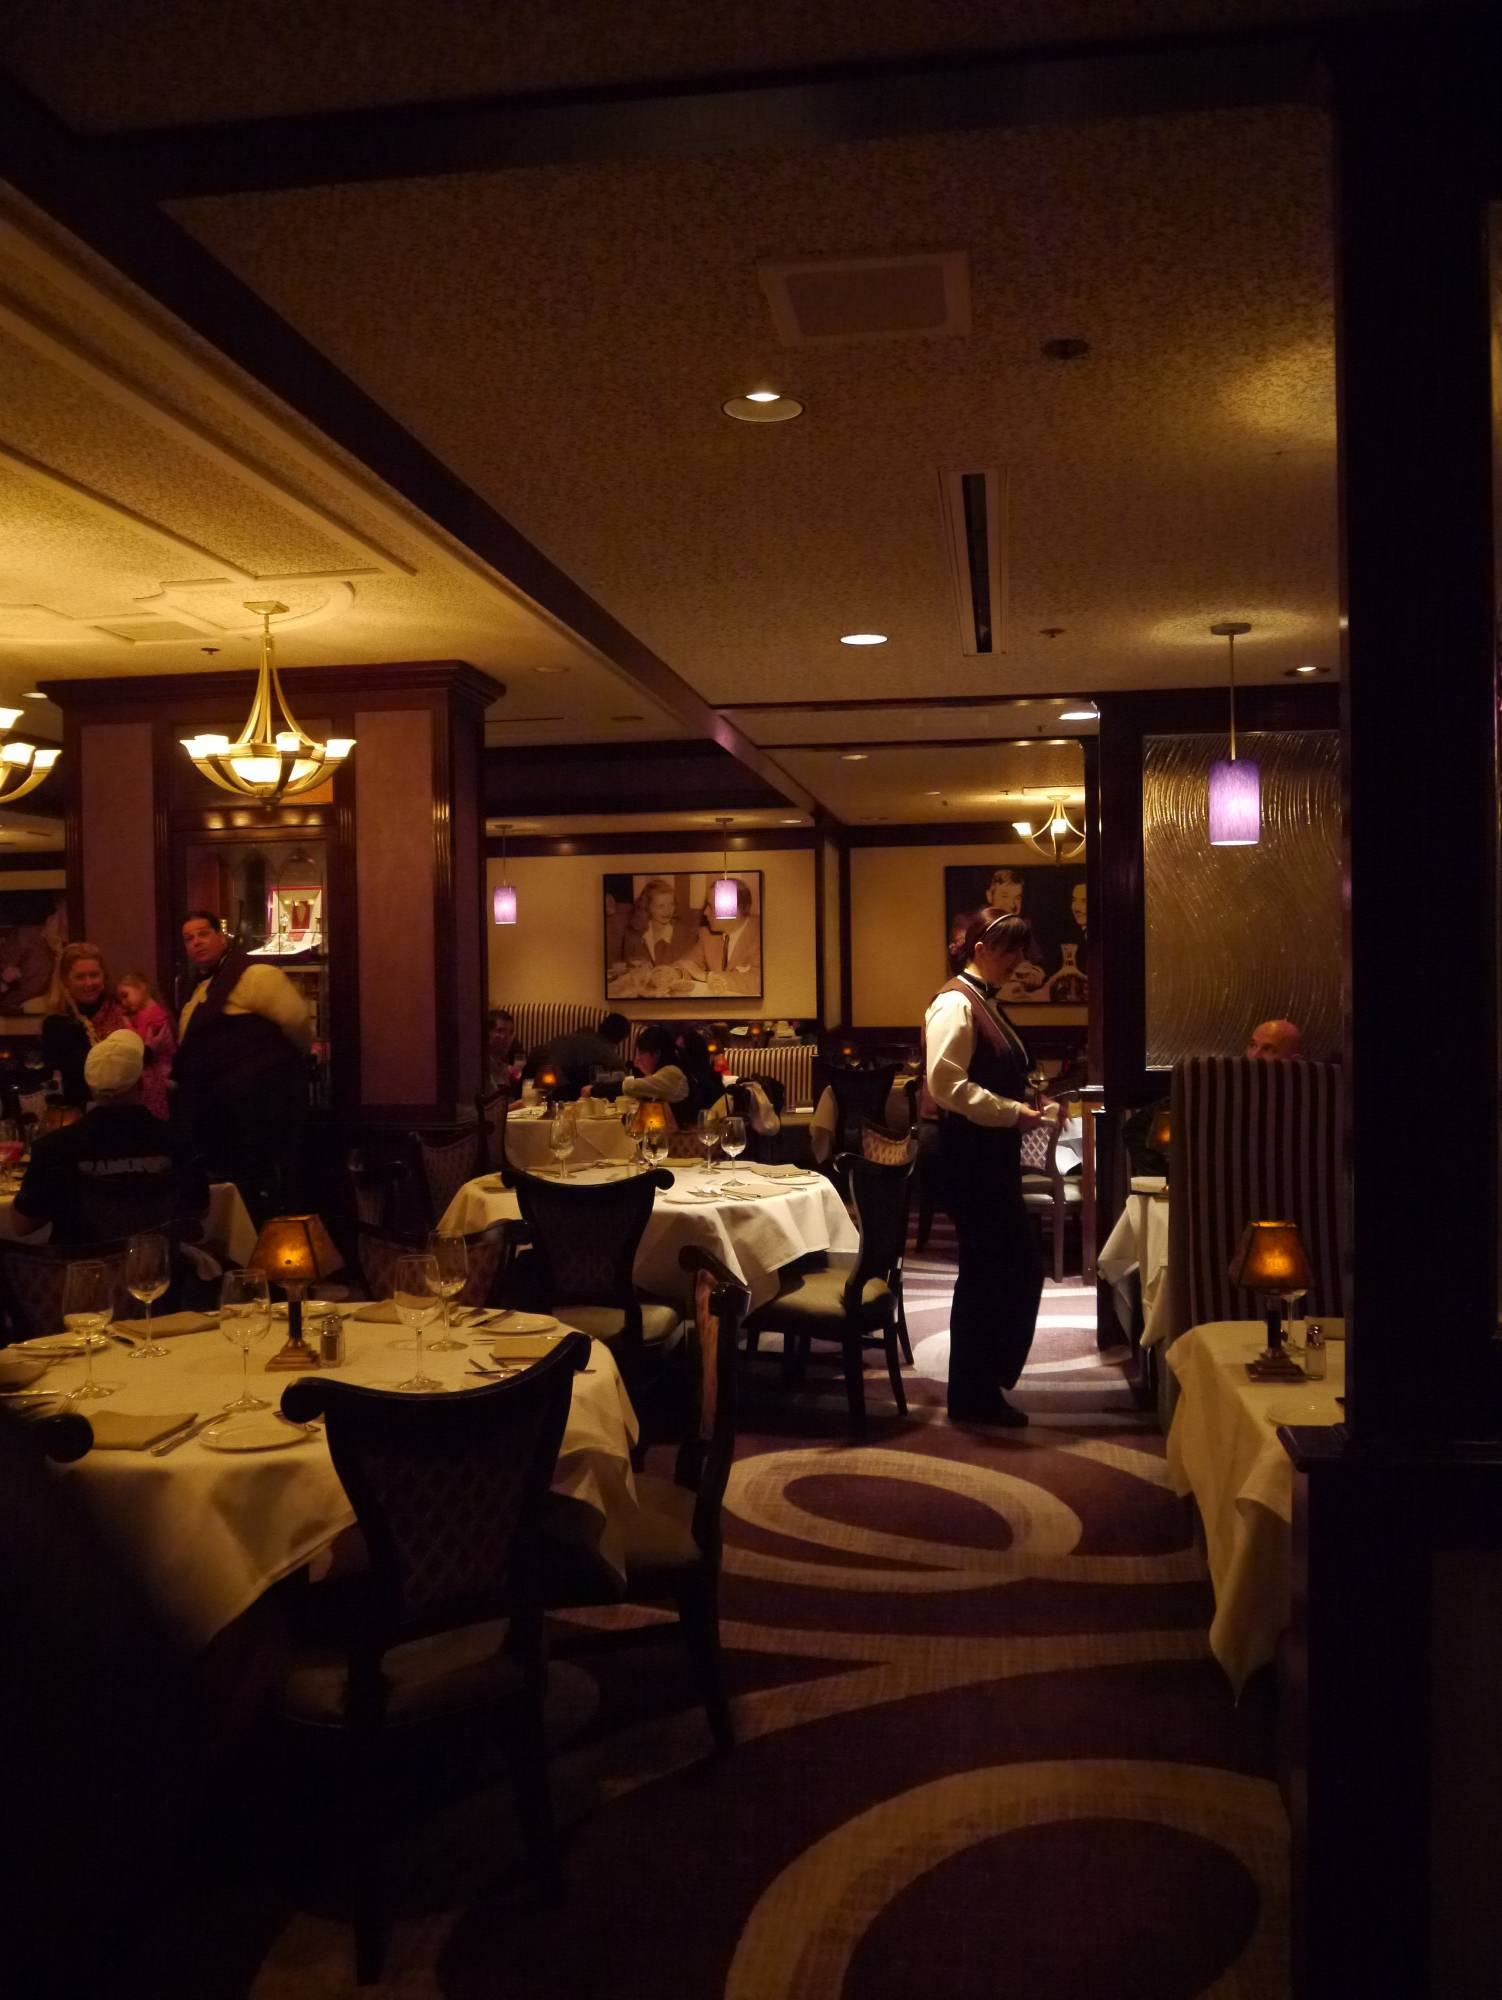 Enjoy a meal even vegetarians will love at Steakhouse 55 | PassPorter.com